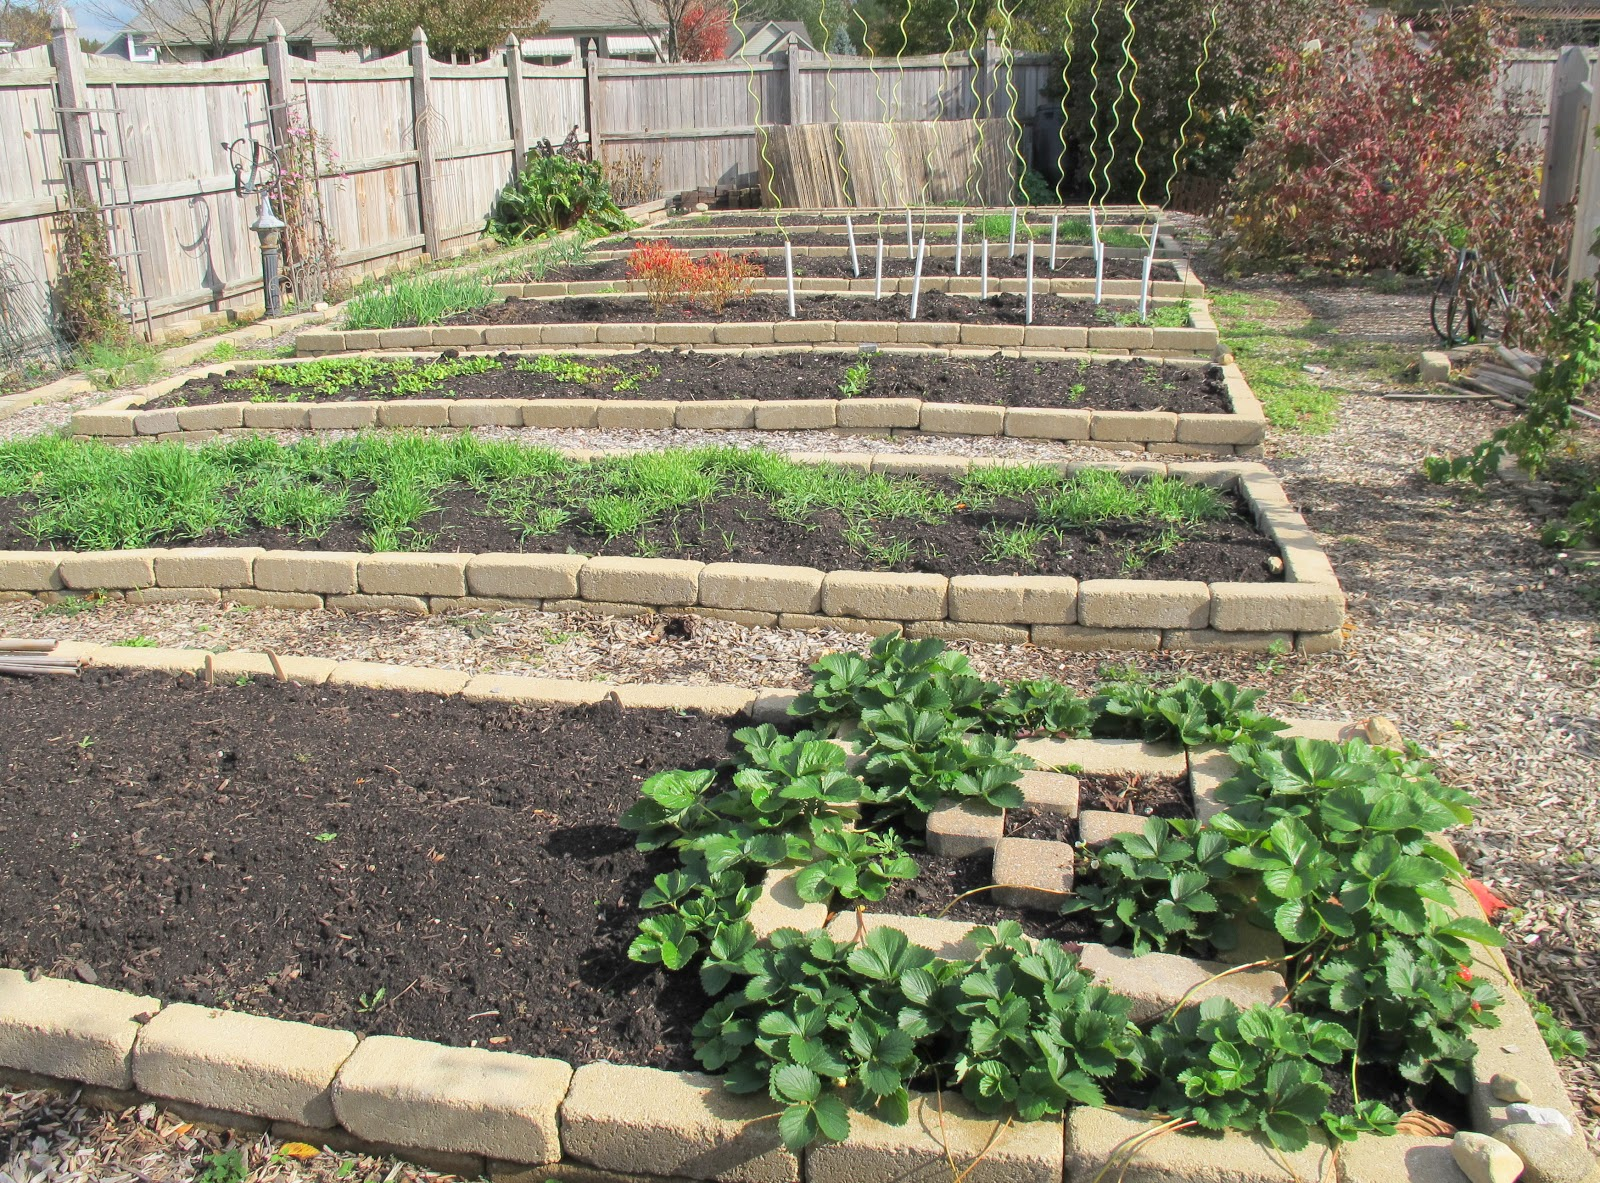 Vegetable garden quotes quotesgram for Vegetable garden bed design